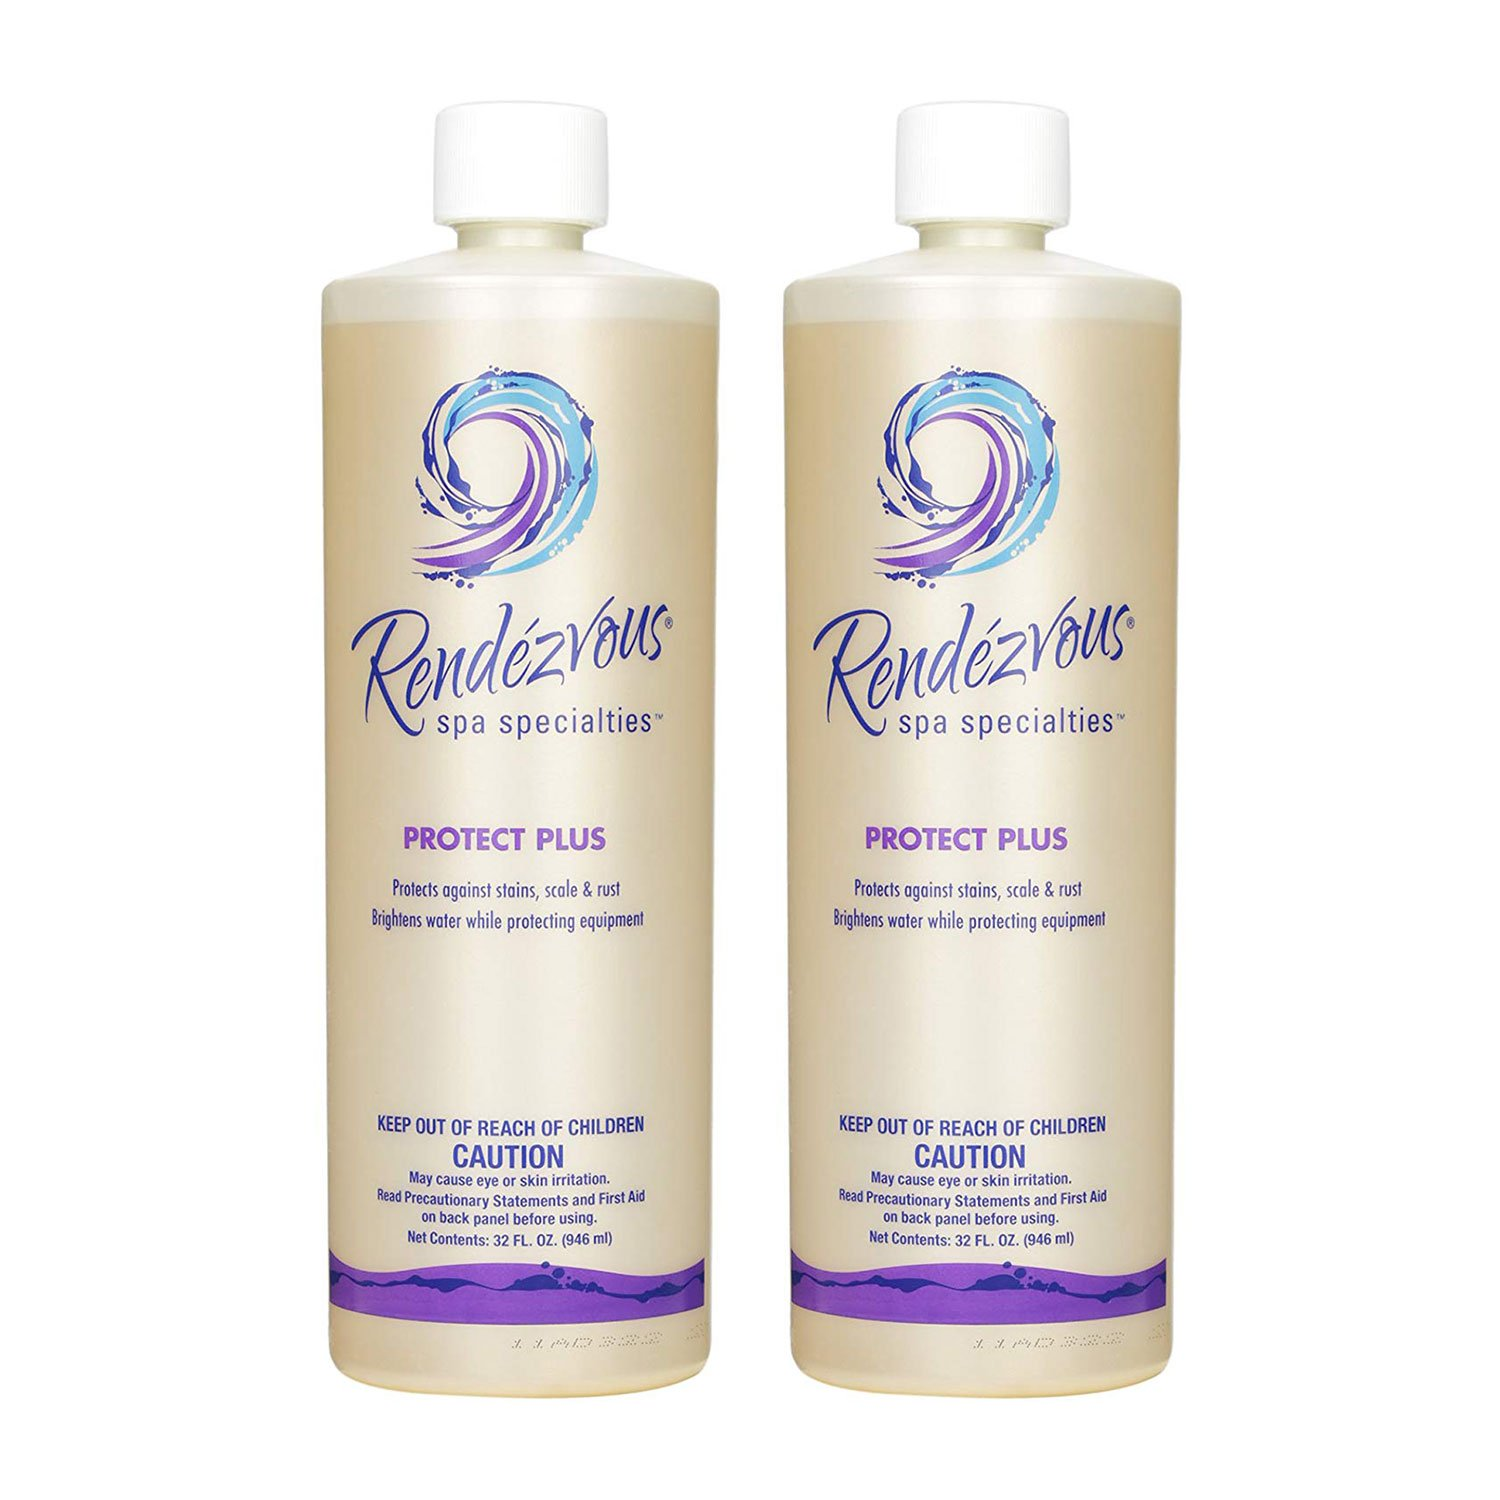 Rendezvous Spa Specialties Rust & Stains Protect Plus Spa Concentrate (2 Pack) by Rendezvous Spa Specialties